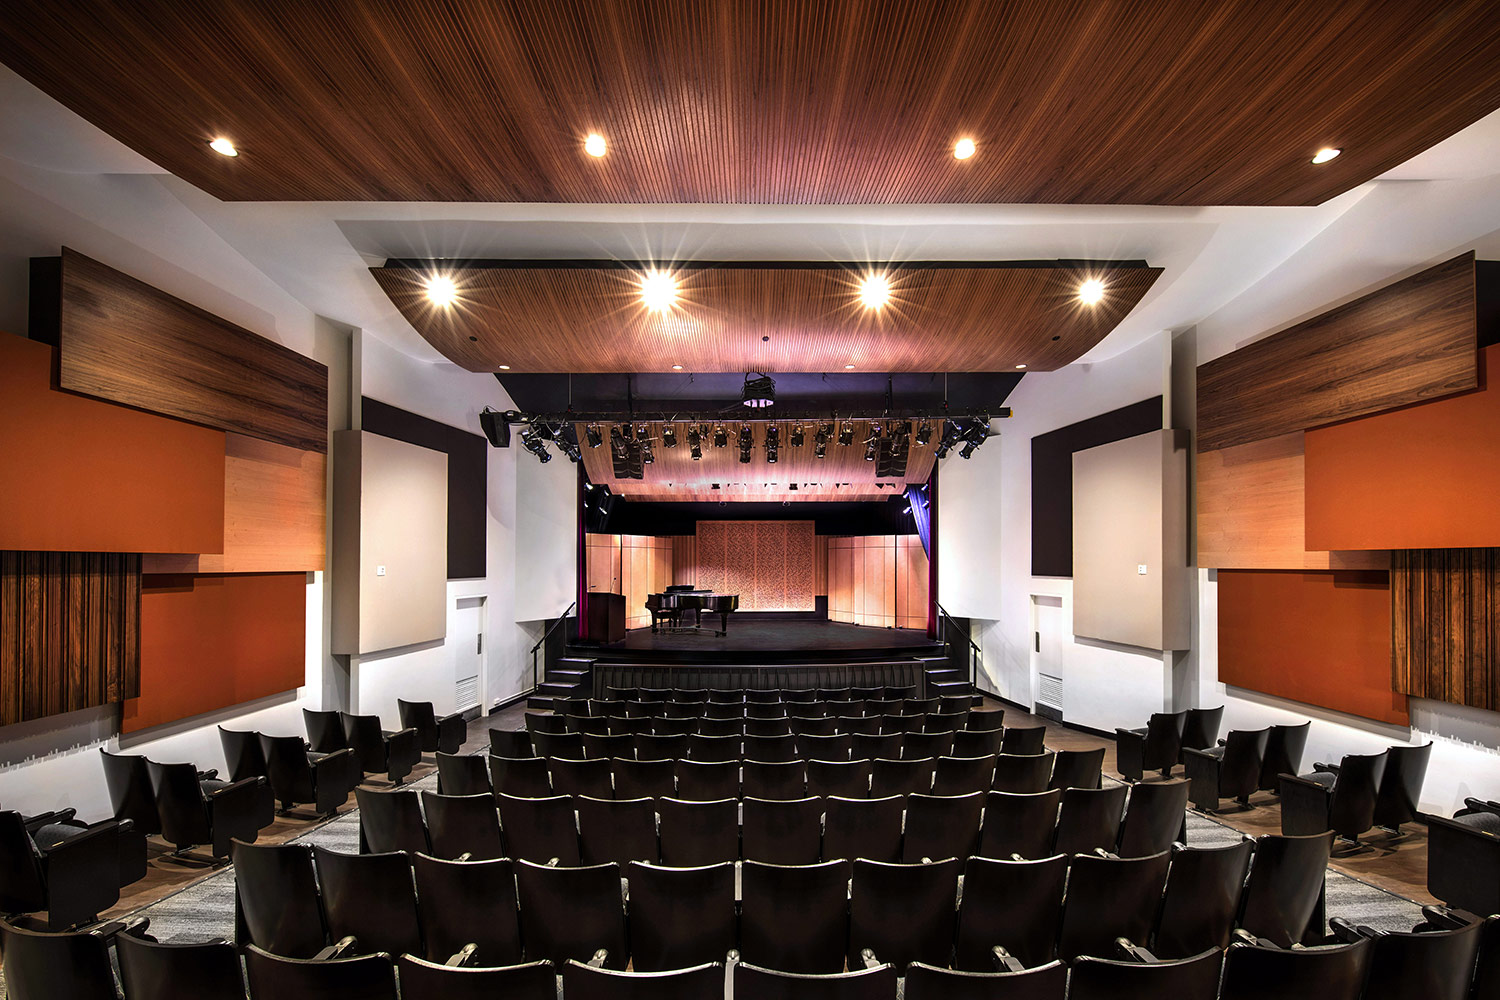 The Herb Alpert Foundation engaged WSDG to design the acoustics for a small on-campus live performance theater at the prestigious UCLA, with help of Lani Hall. Theater front view, perforated panels.